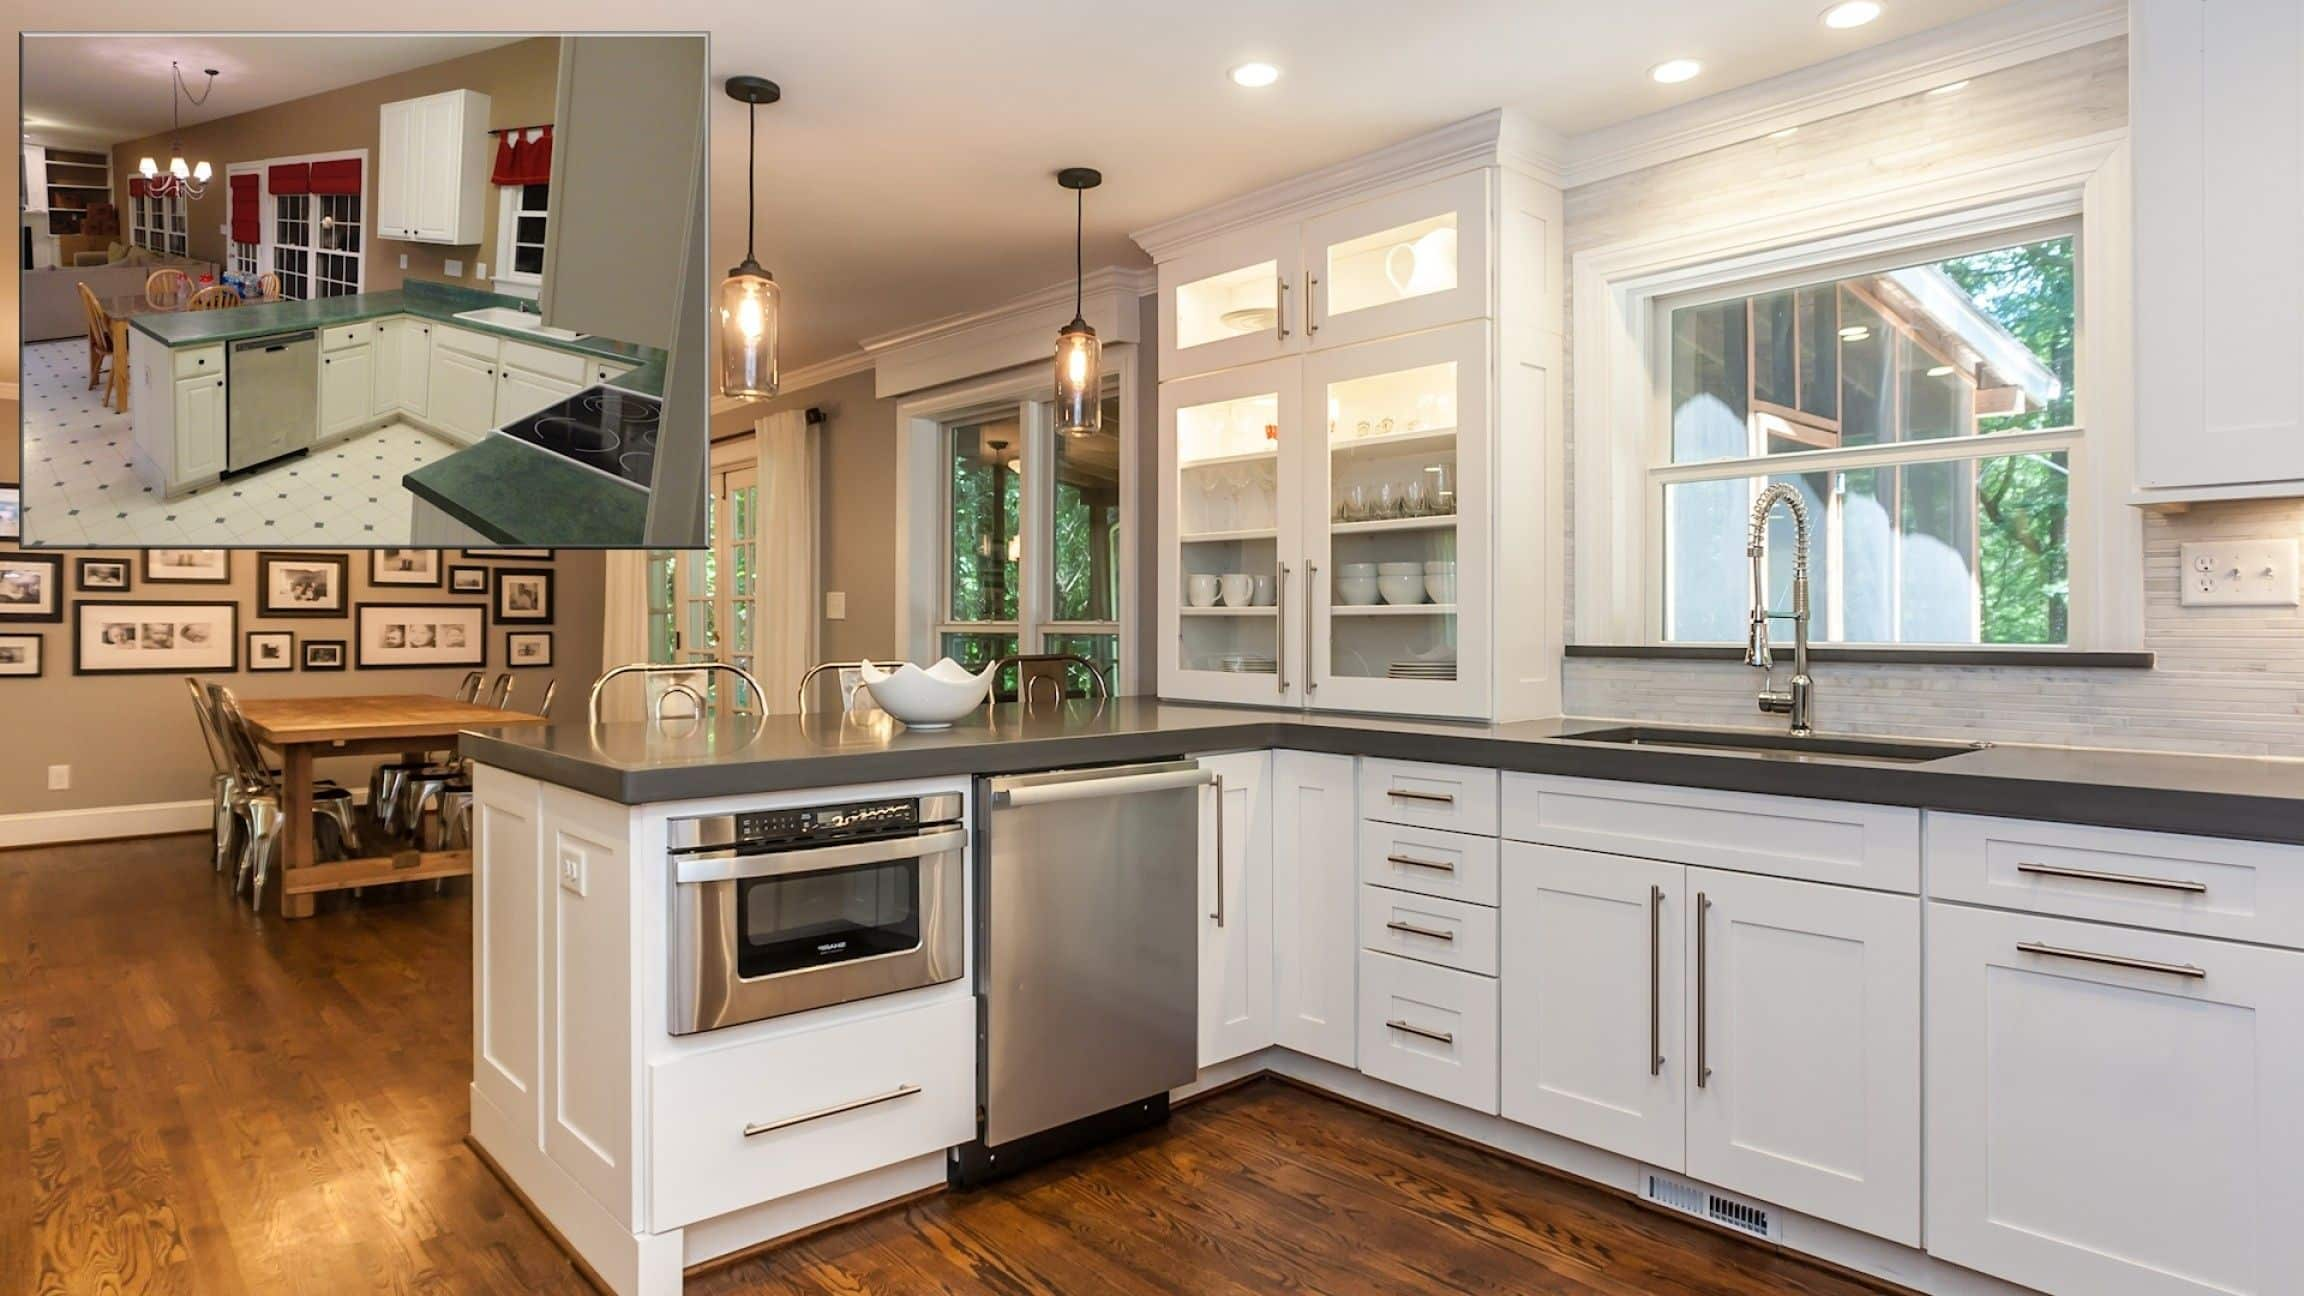 Kitchen Plumbing and remodeling transformation WOW